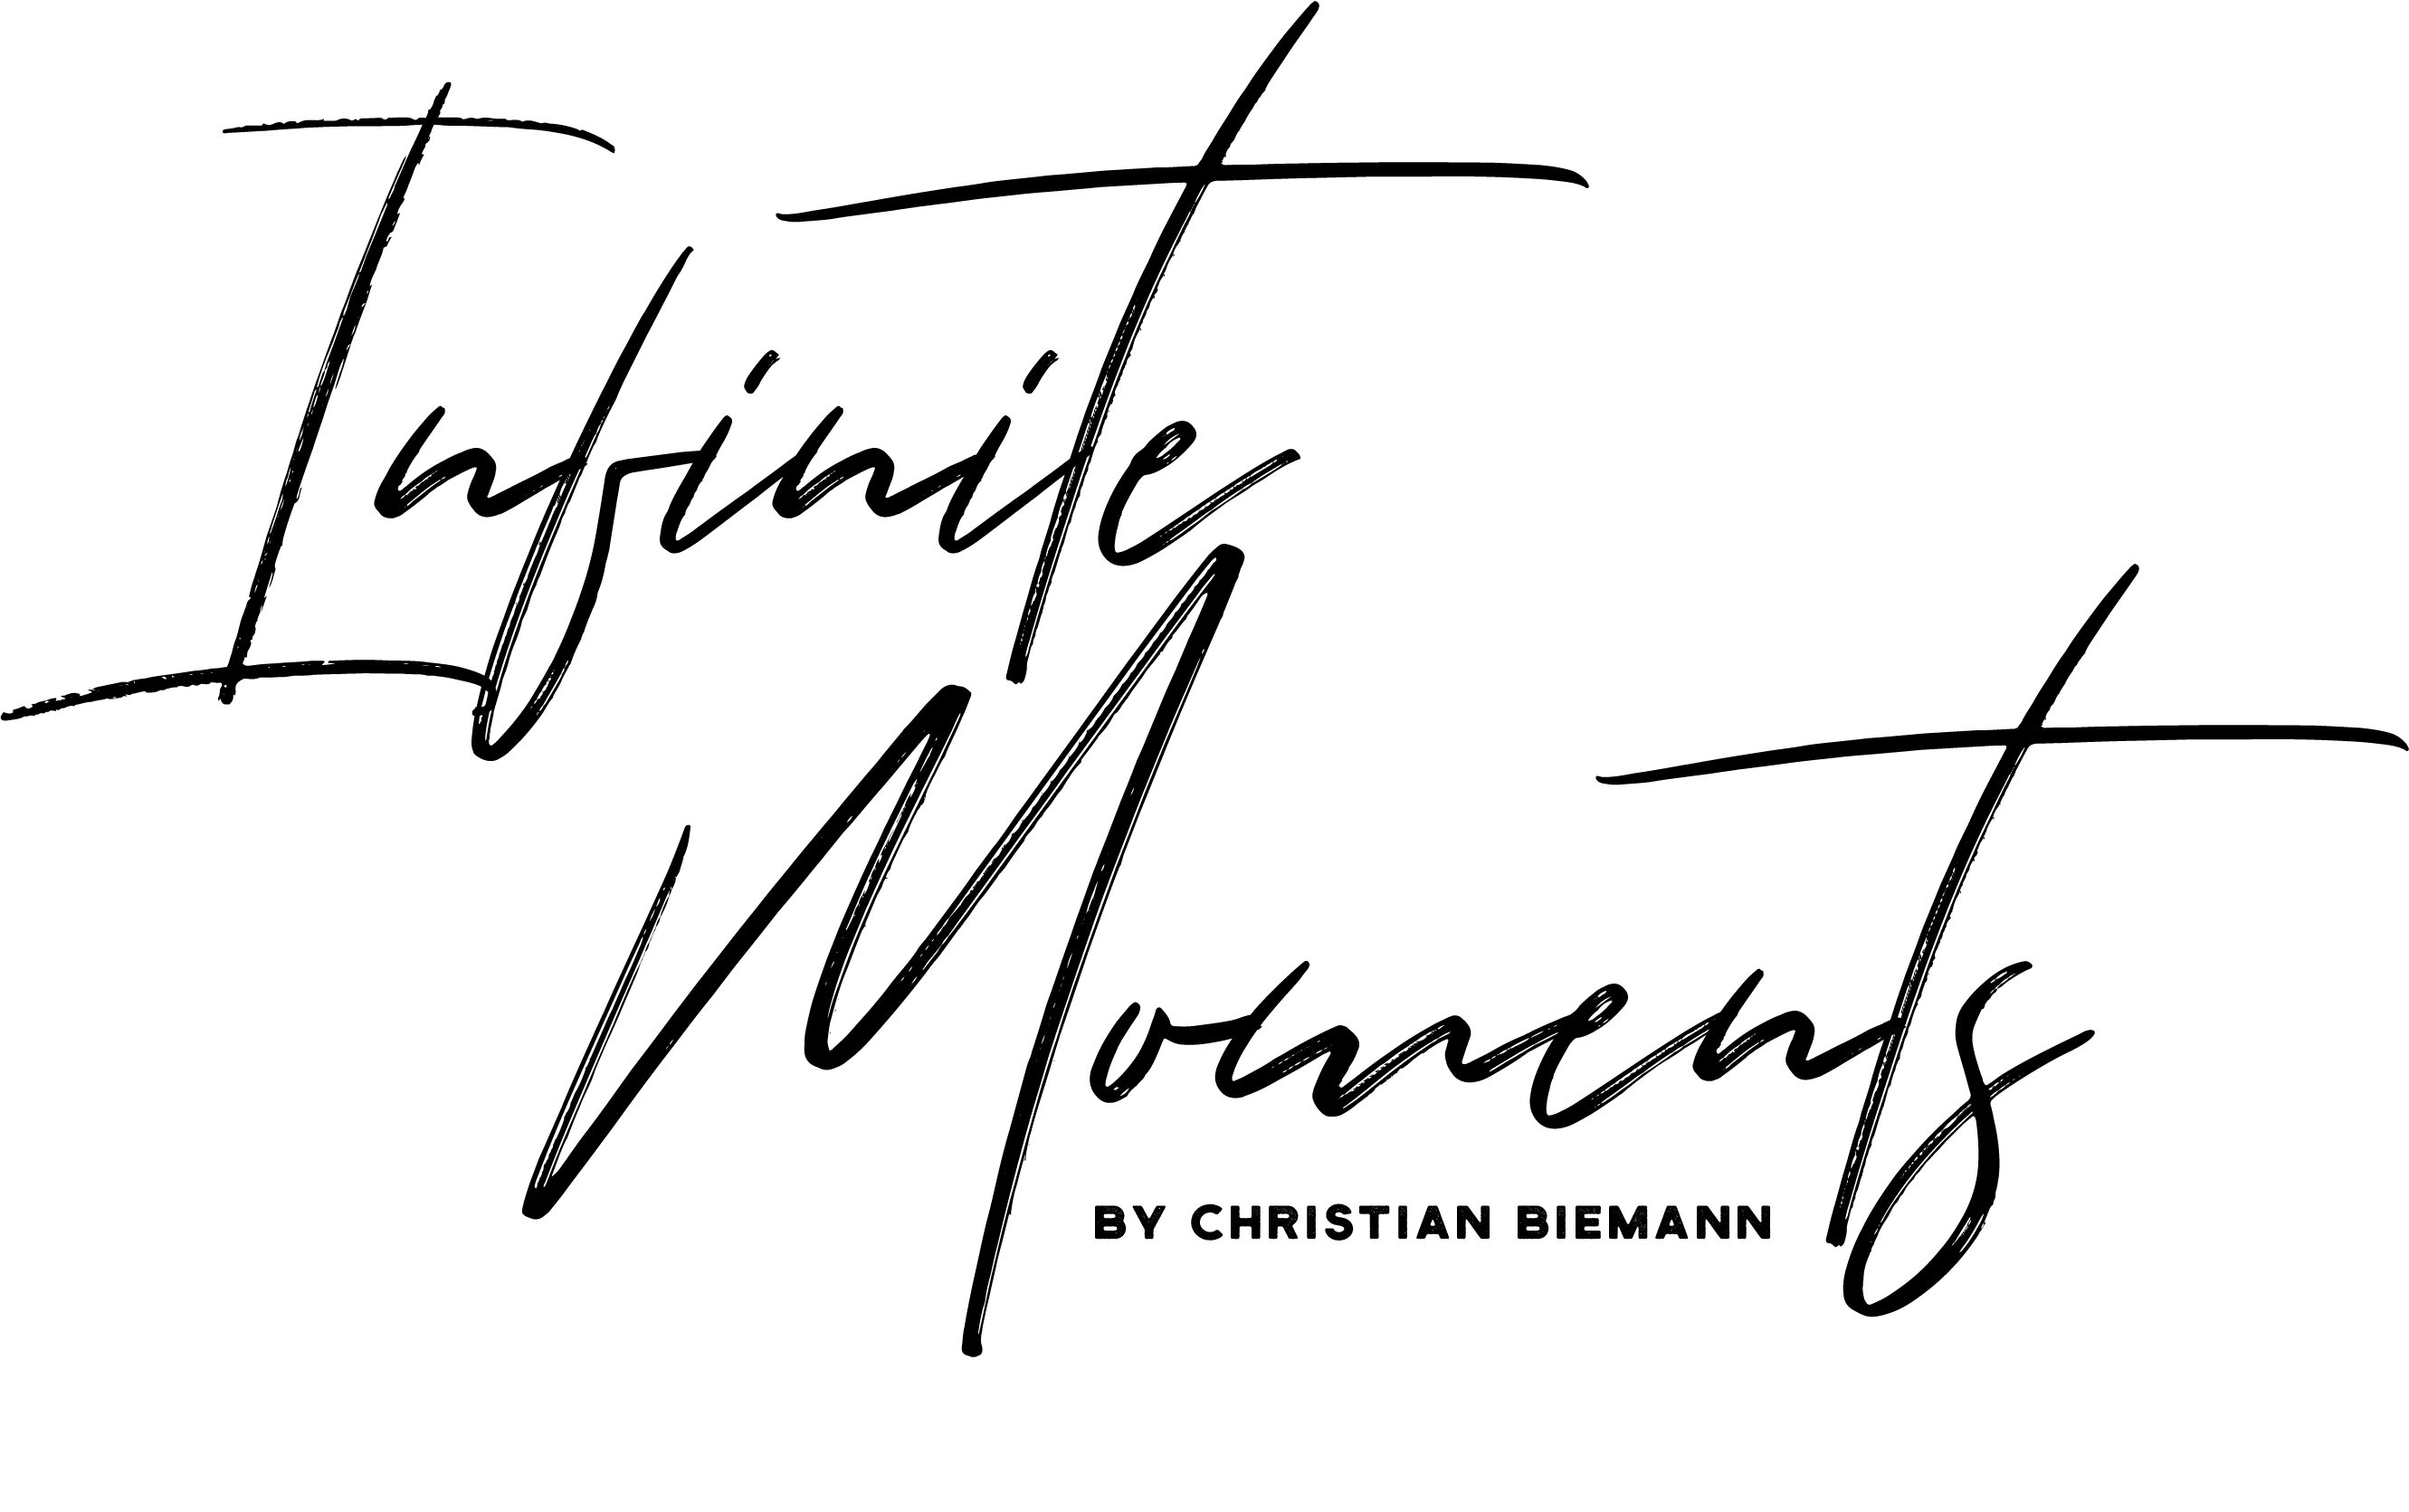 infinite-moments-handwritten-black